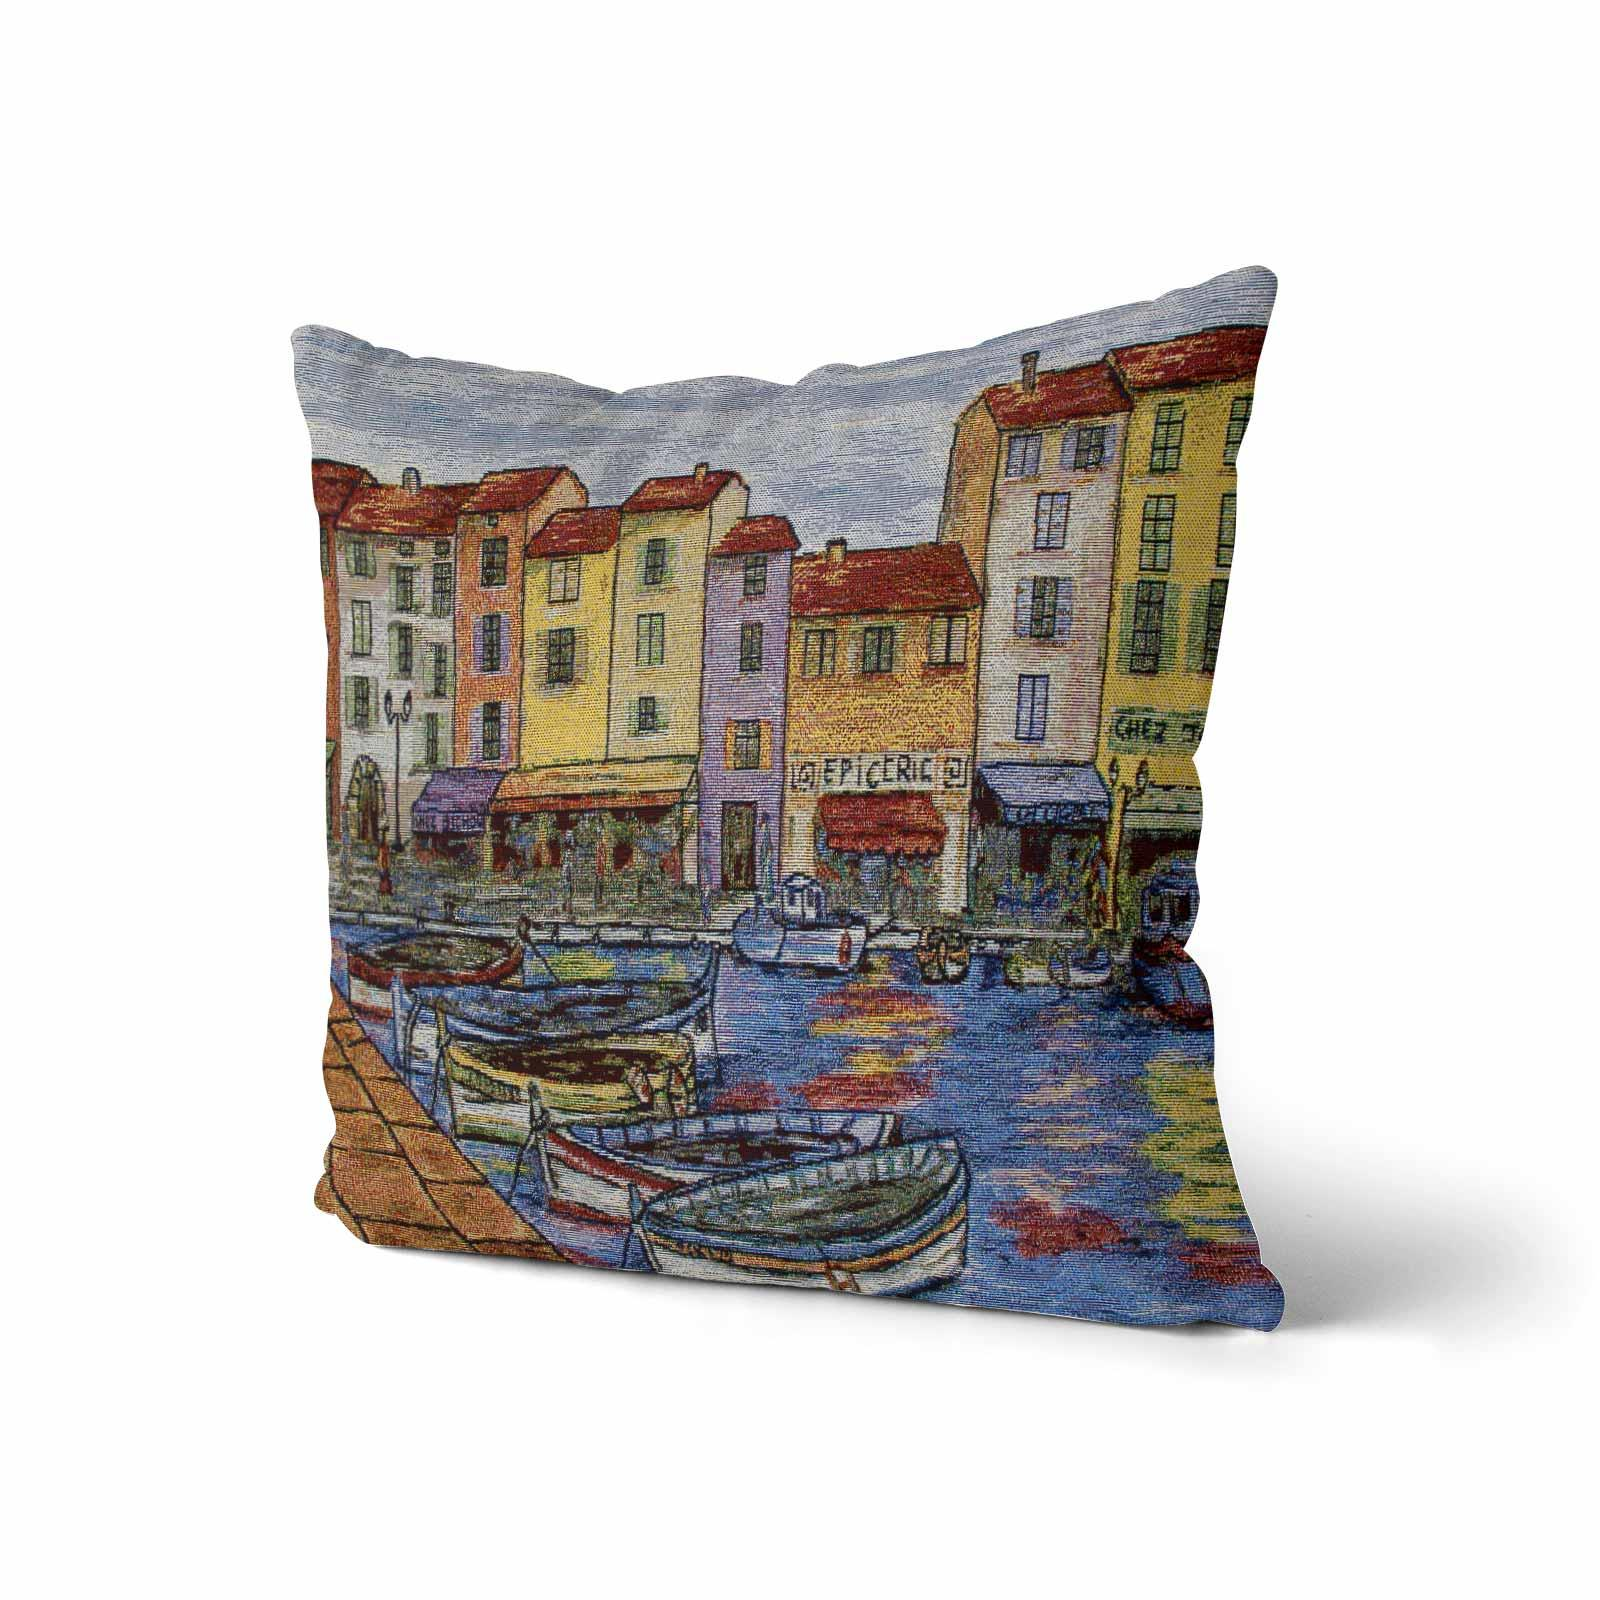 Tapestry-Cushion-Covers-Vintage-Pillow-Cover-Collection-18-034-45cm-Filled-Cushions thumbnail 69